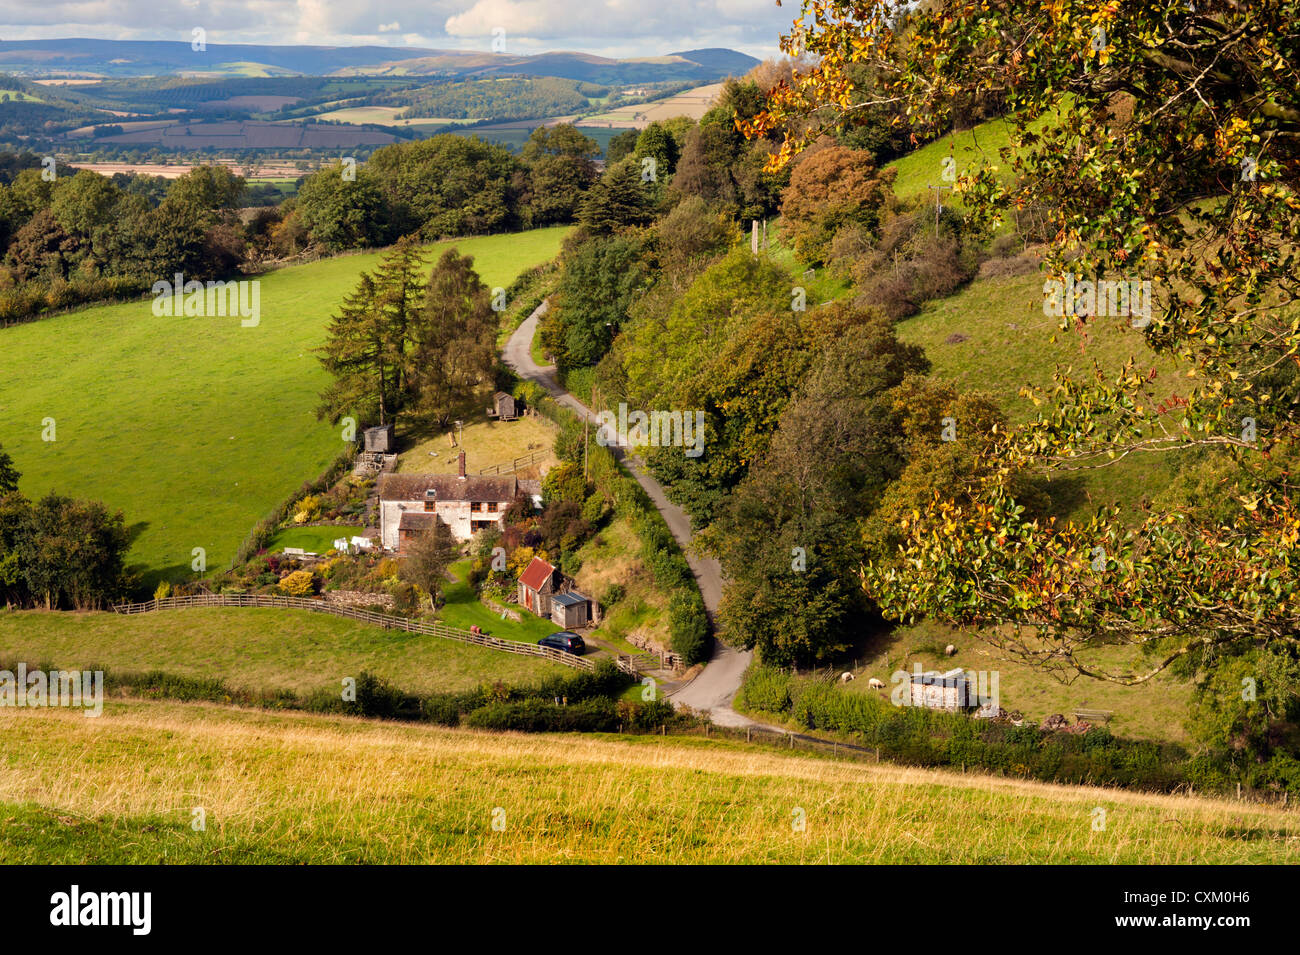 Country cottage located in the Shropshire Hills near Brown Clee Hill and Abdon village. - Stock Image